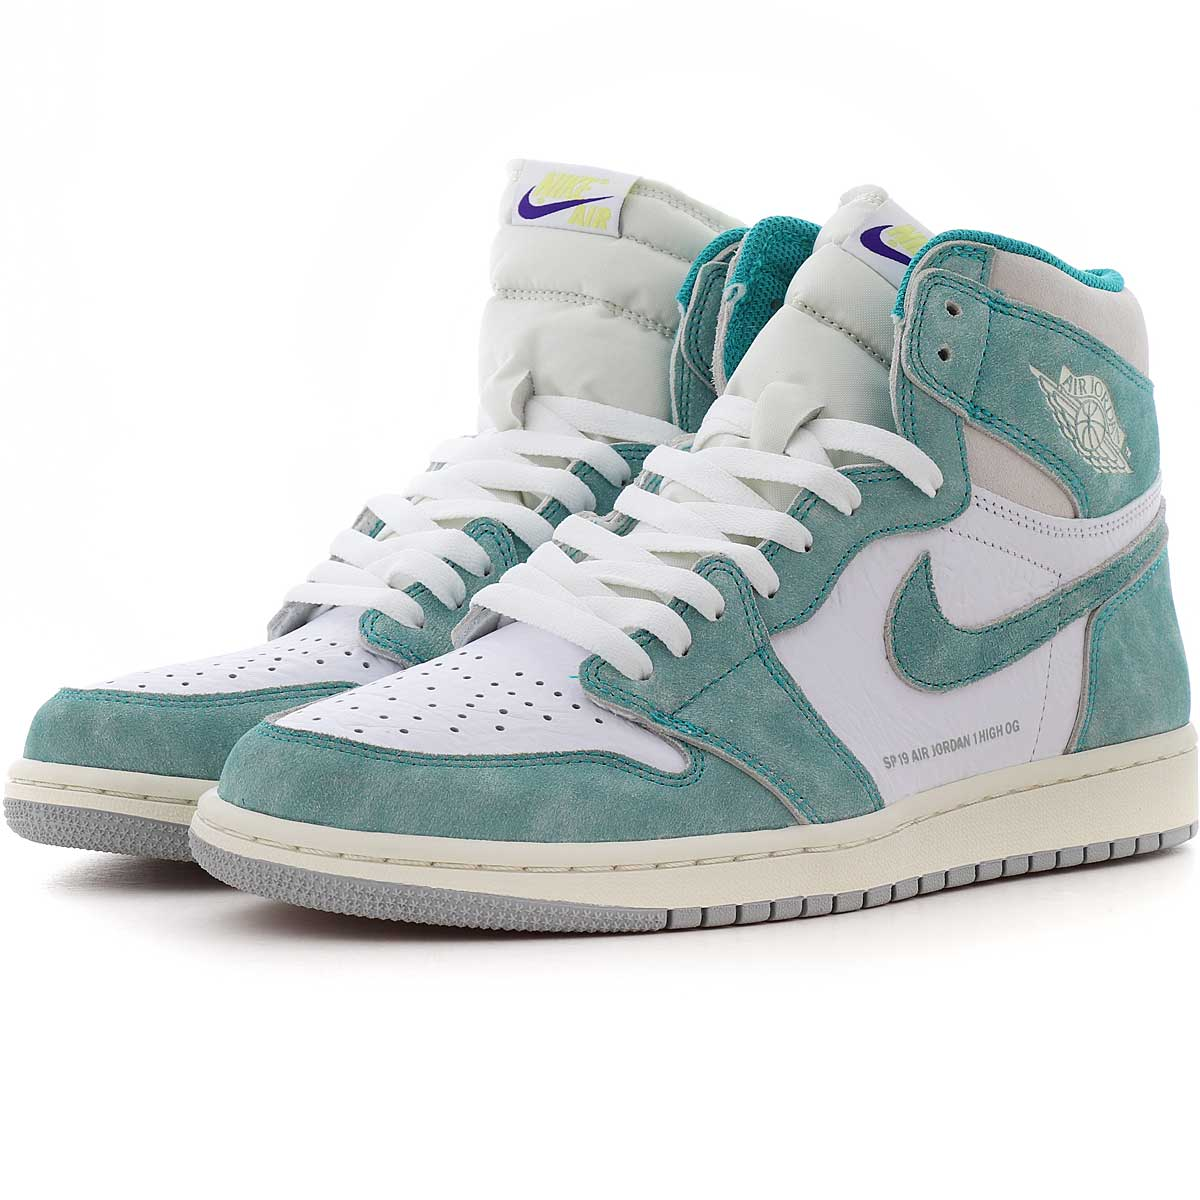 air jordan high retro 1 og